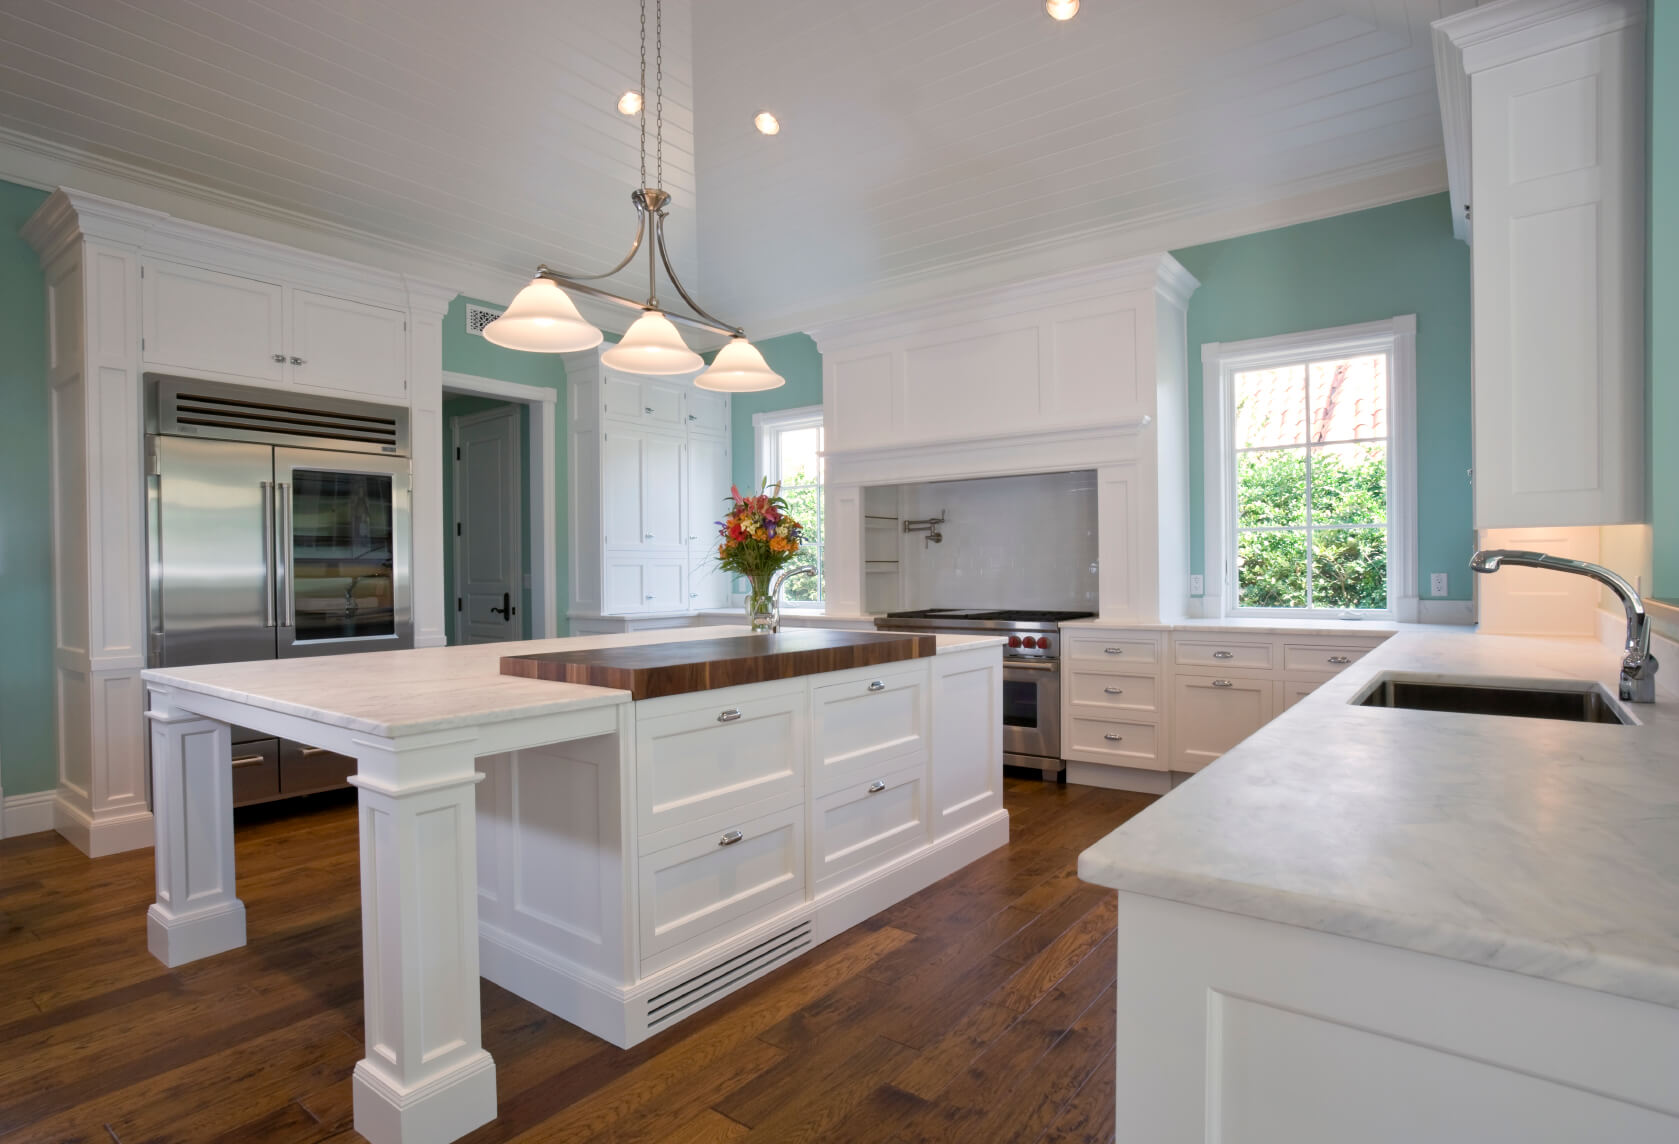 white kitchen designs pictures white kitchen countertops Light mint blue paint adds burst of color to this all white kitchen over natural